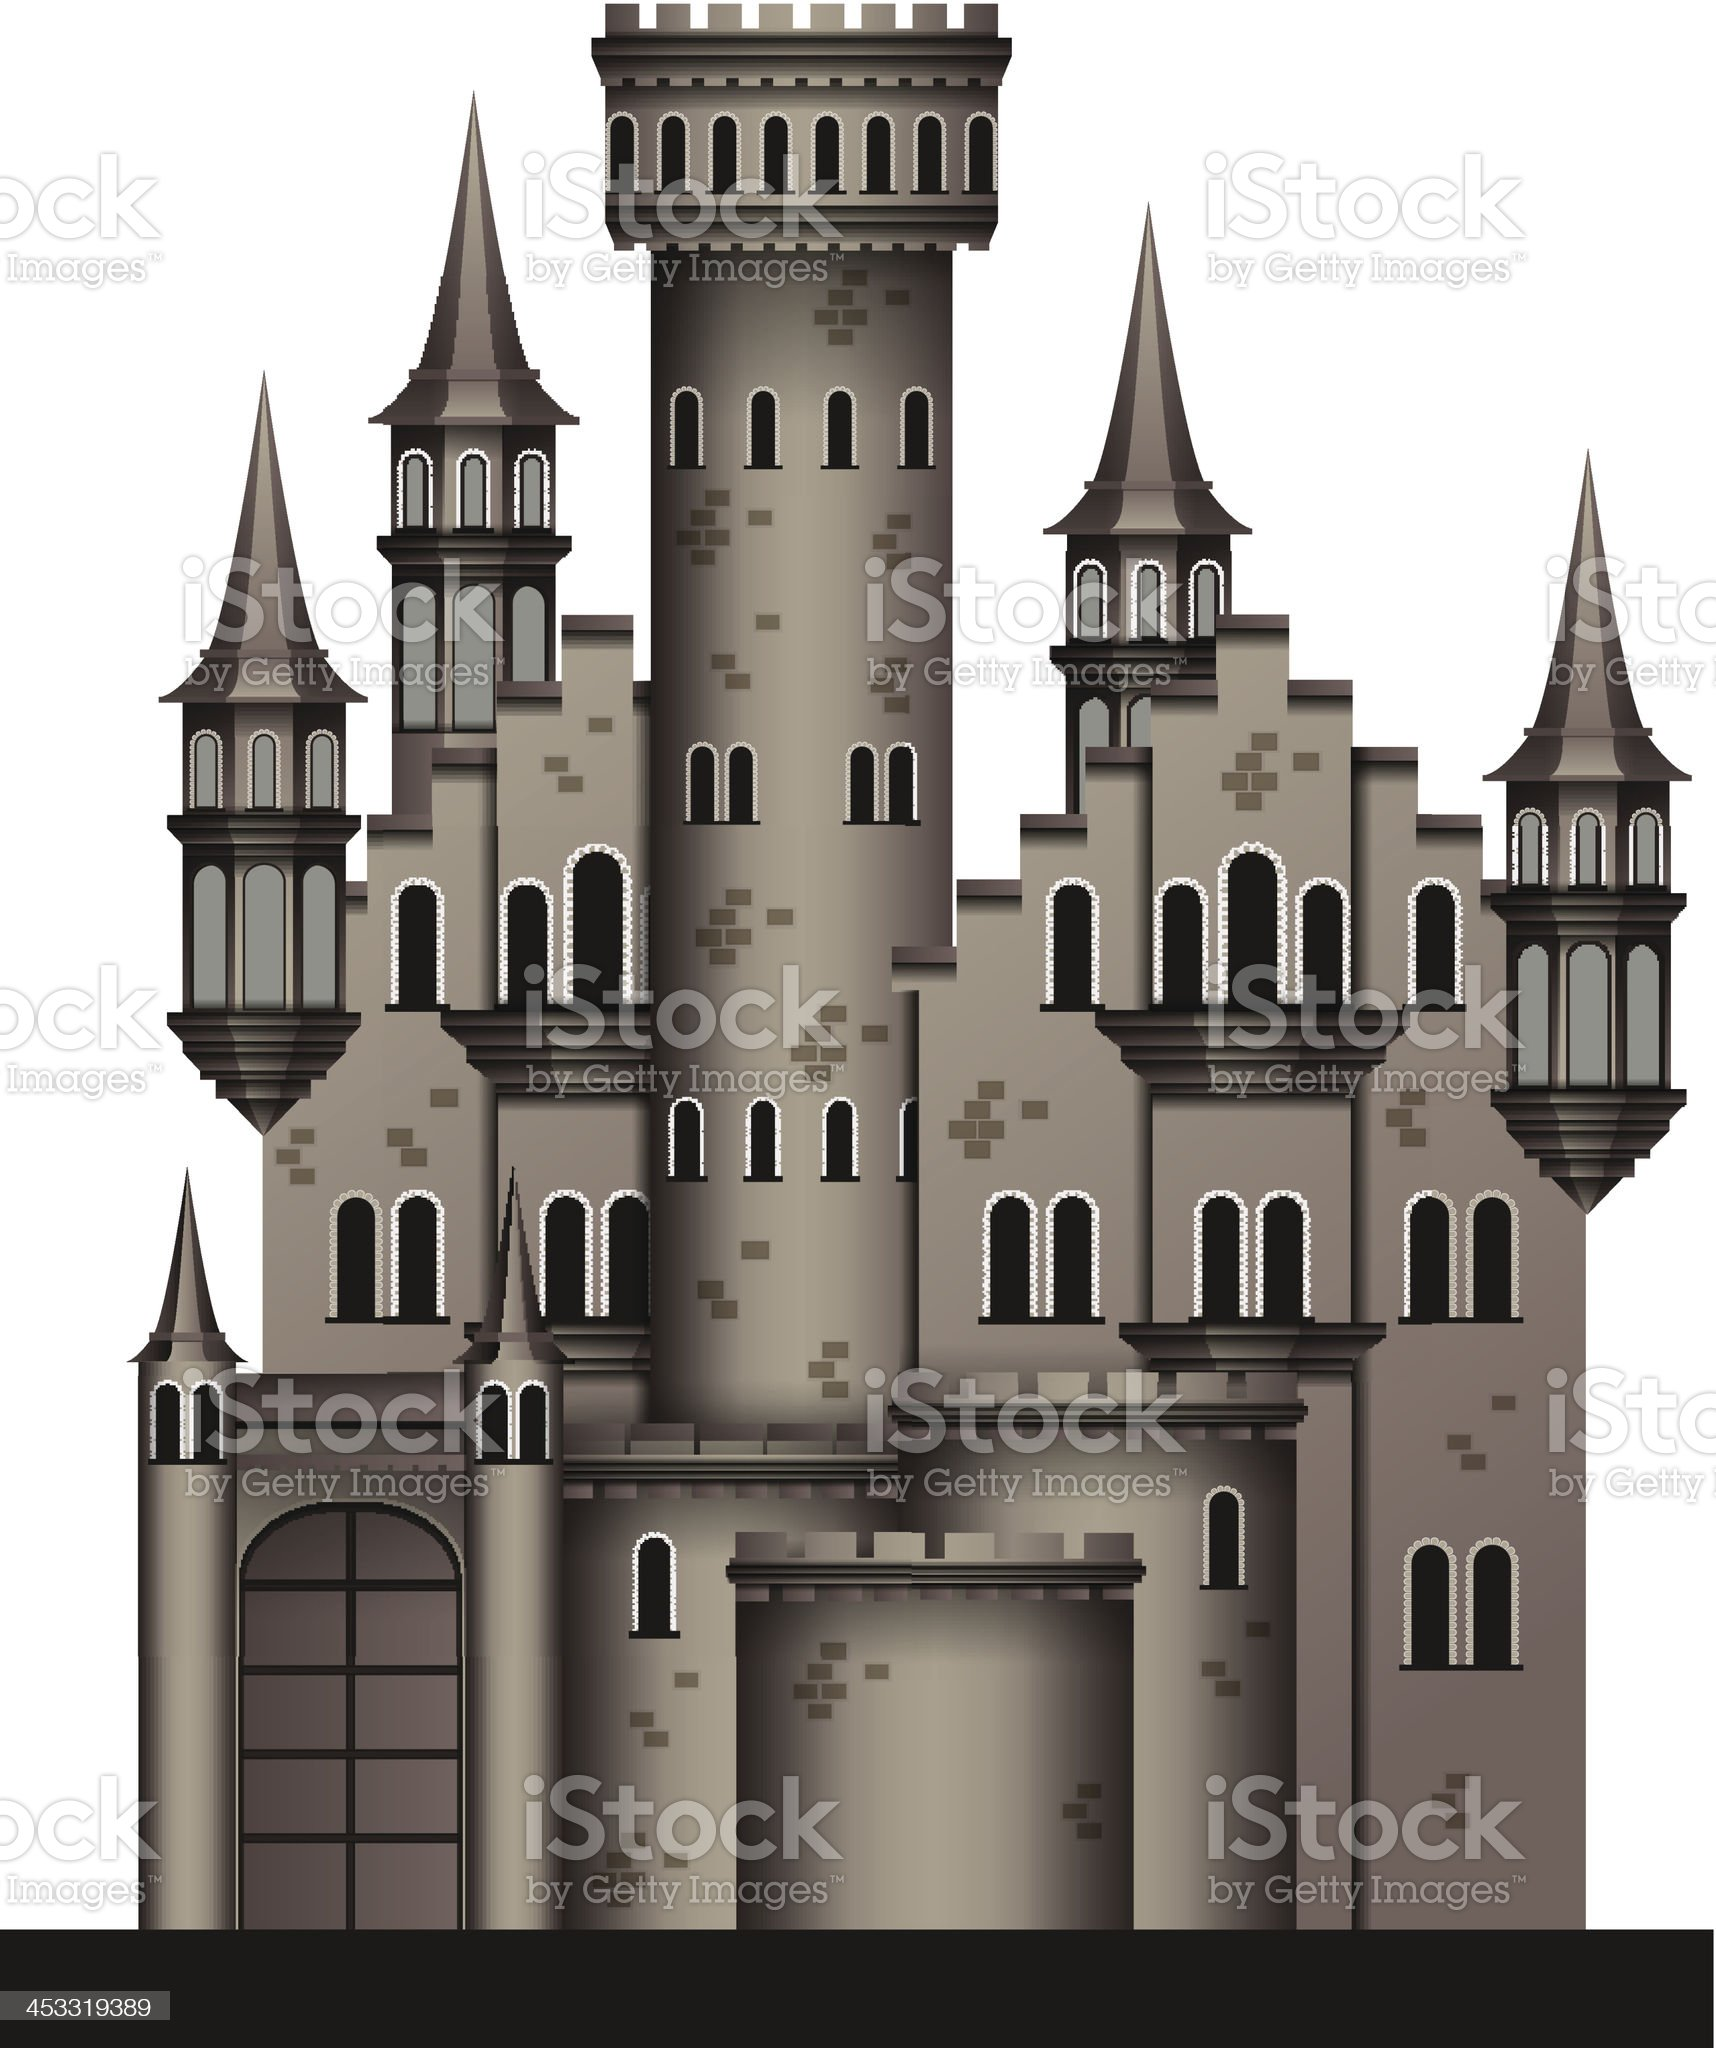 Medieval castle royalty-free stock vector art